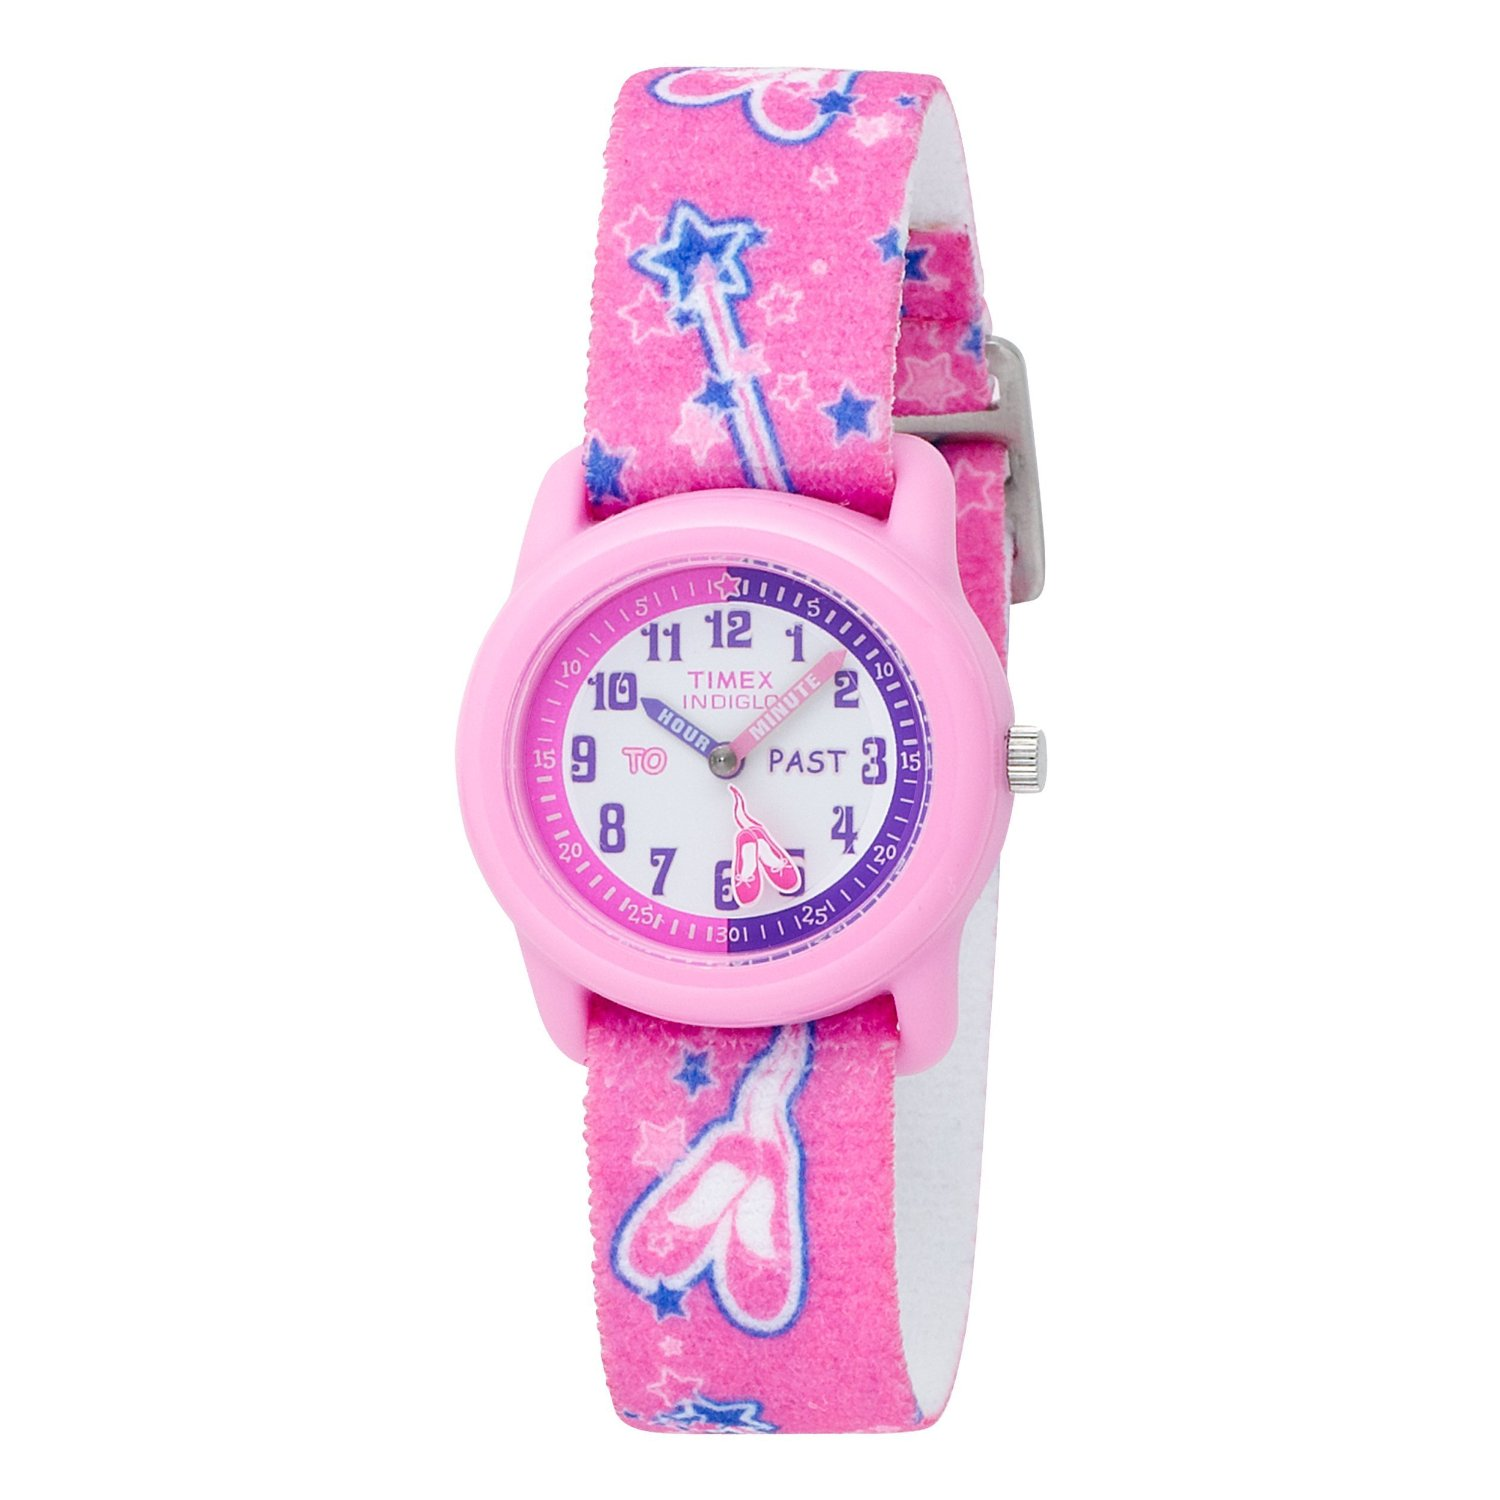 welcome to fashion forum stylish wrist watches for girls